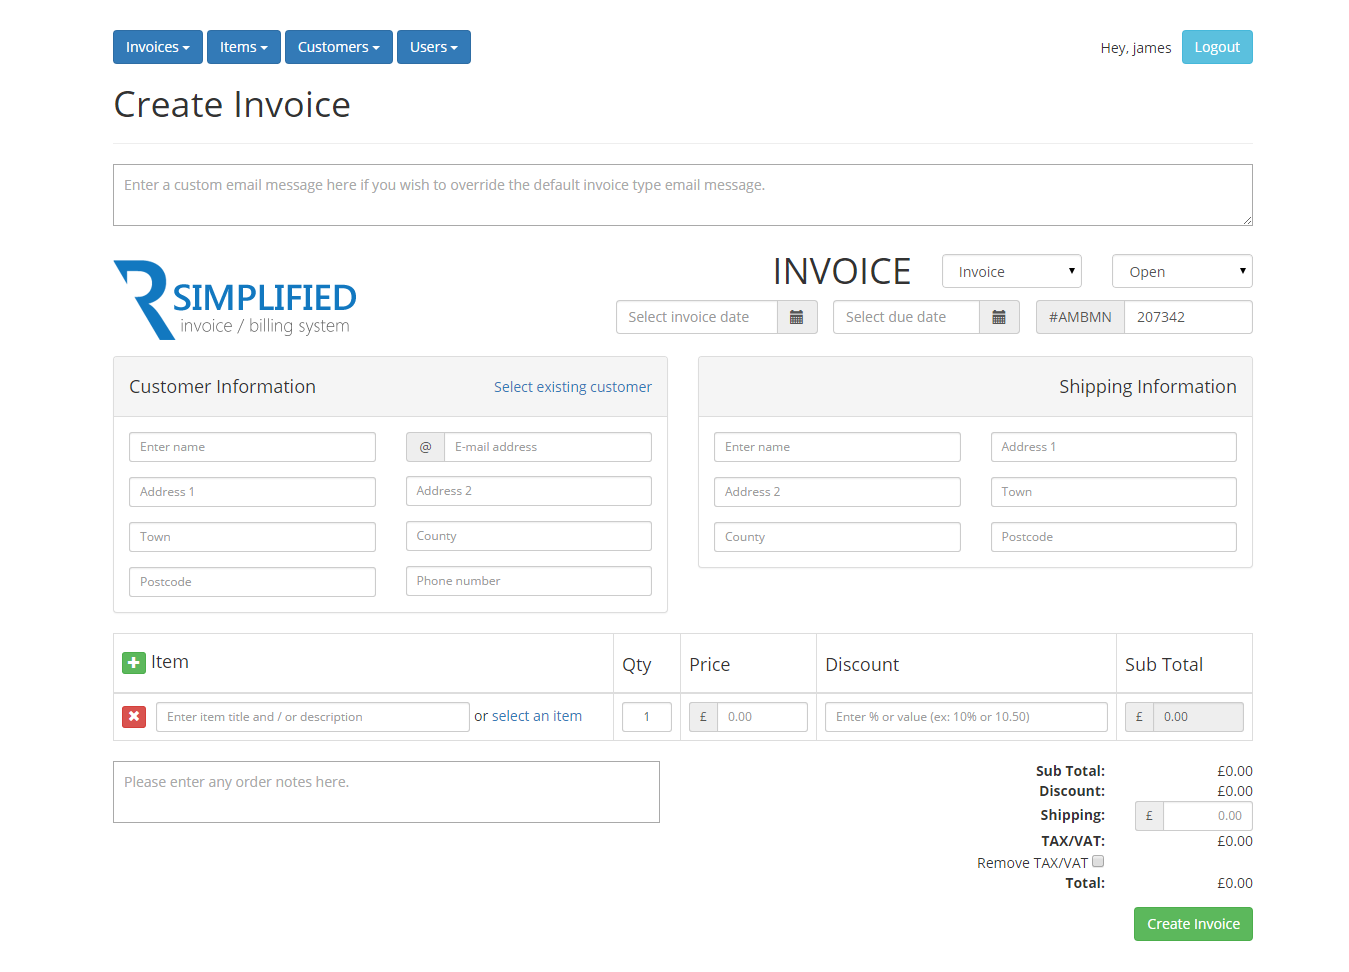 Coachoutletonlineplusus  Surprising Simplified Php Invoice  Billing System By Rebootdigitaluk  With Lovable  Createinvoicepng  With Captivating Invoice Word Doc Also Payment Invoice Sample In Addition Free Invoice Templates Pdf And Audi Q Invoice Price As Well As Invoice Insurance Additionally Sample Sales Invoice From Codecanyonnet With Coachoutletonlineplusus  Lovable Simplified Php Invoice  Billing System By Rebootdigitaluk  With Captivating  Createinvoicepng  And Surprising Invoice Word Doc Also Payment Invoice Sample In Addition Free Invoice Templates Pdf From Codecanyonnet